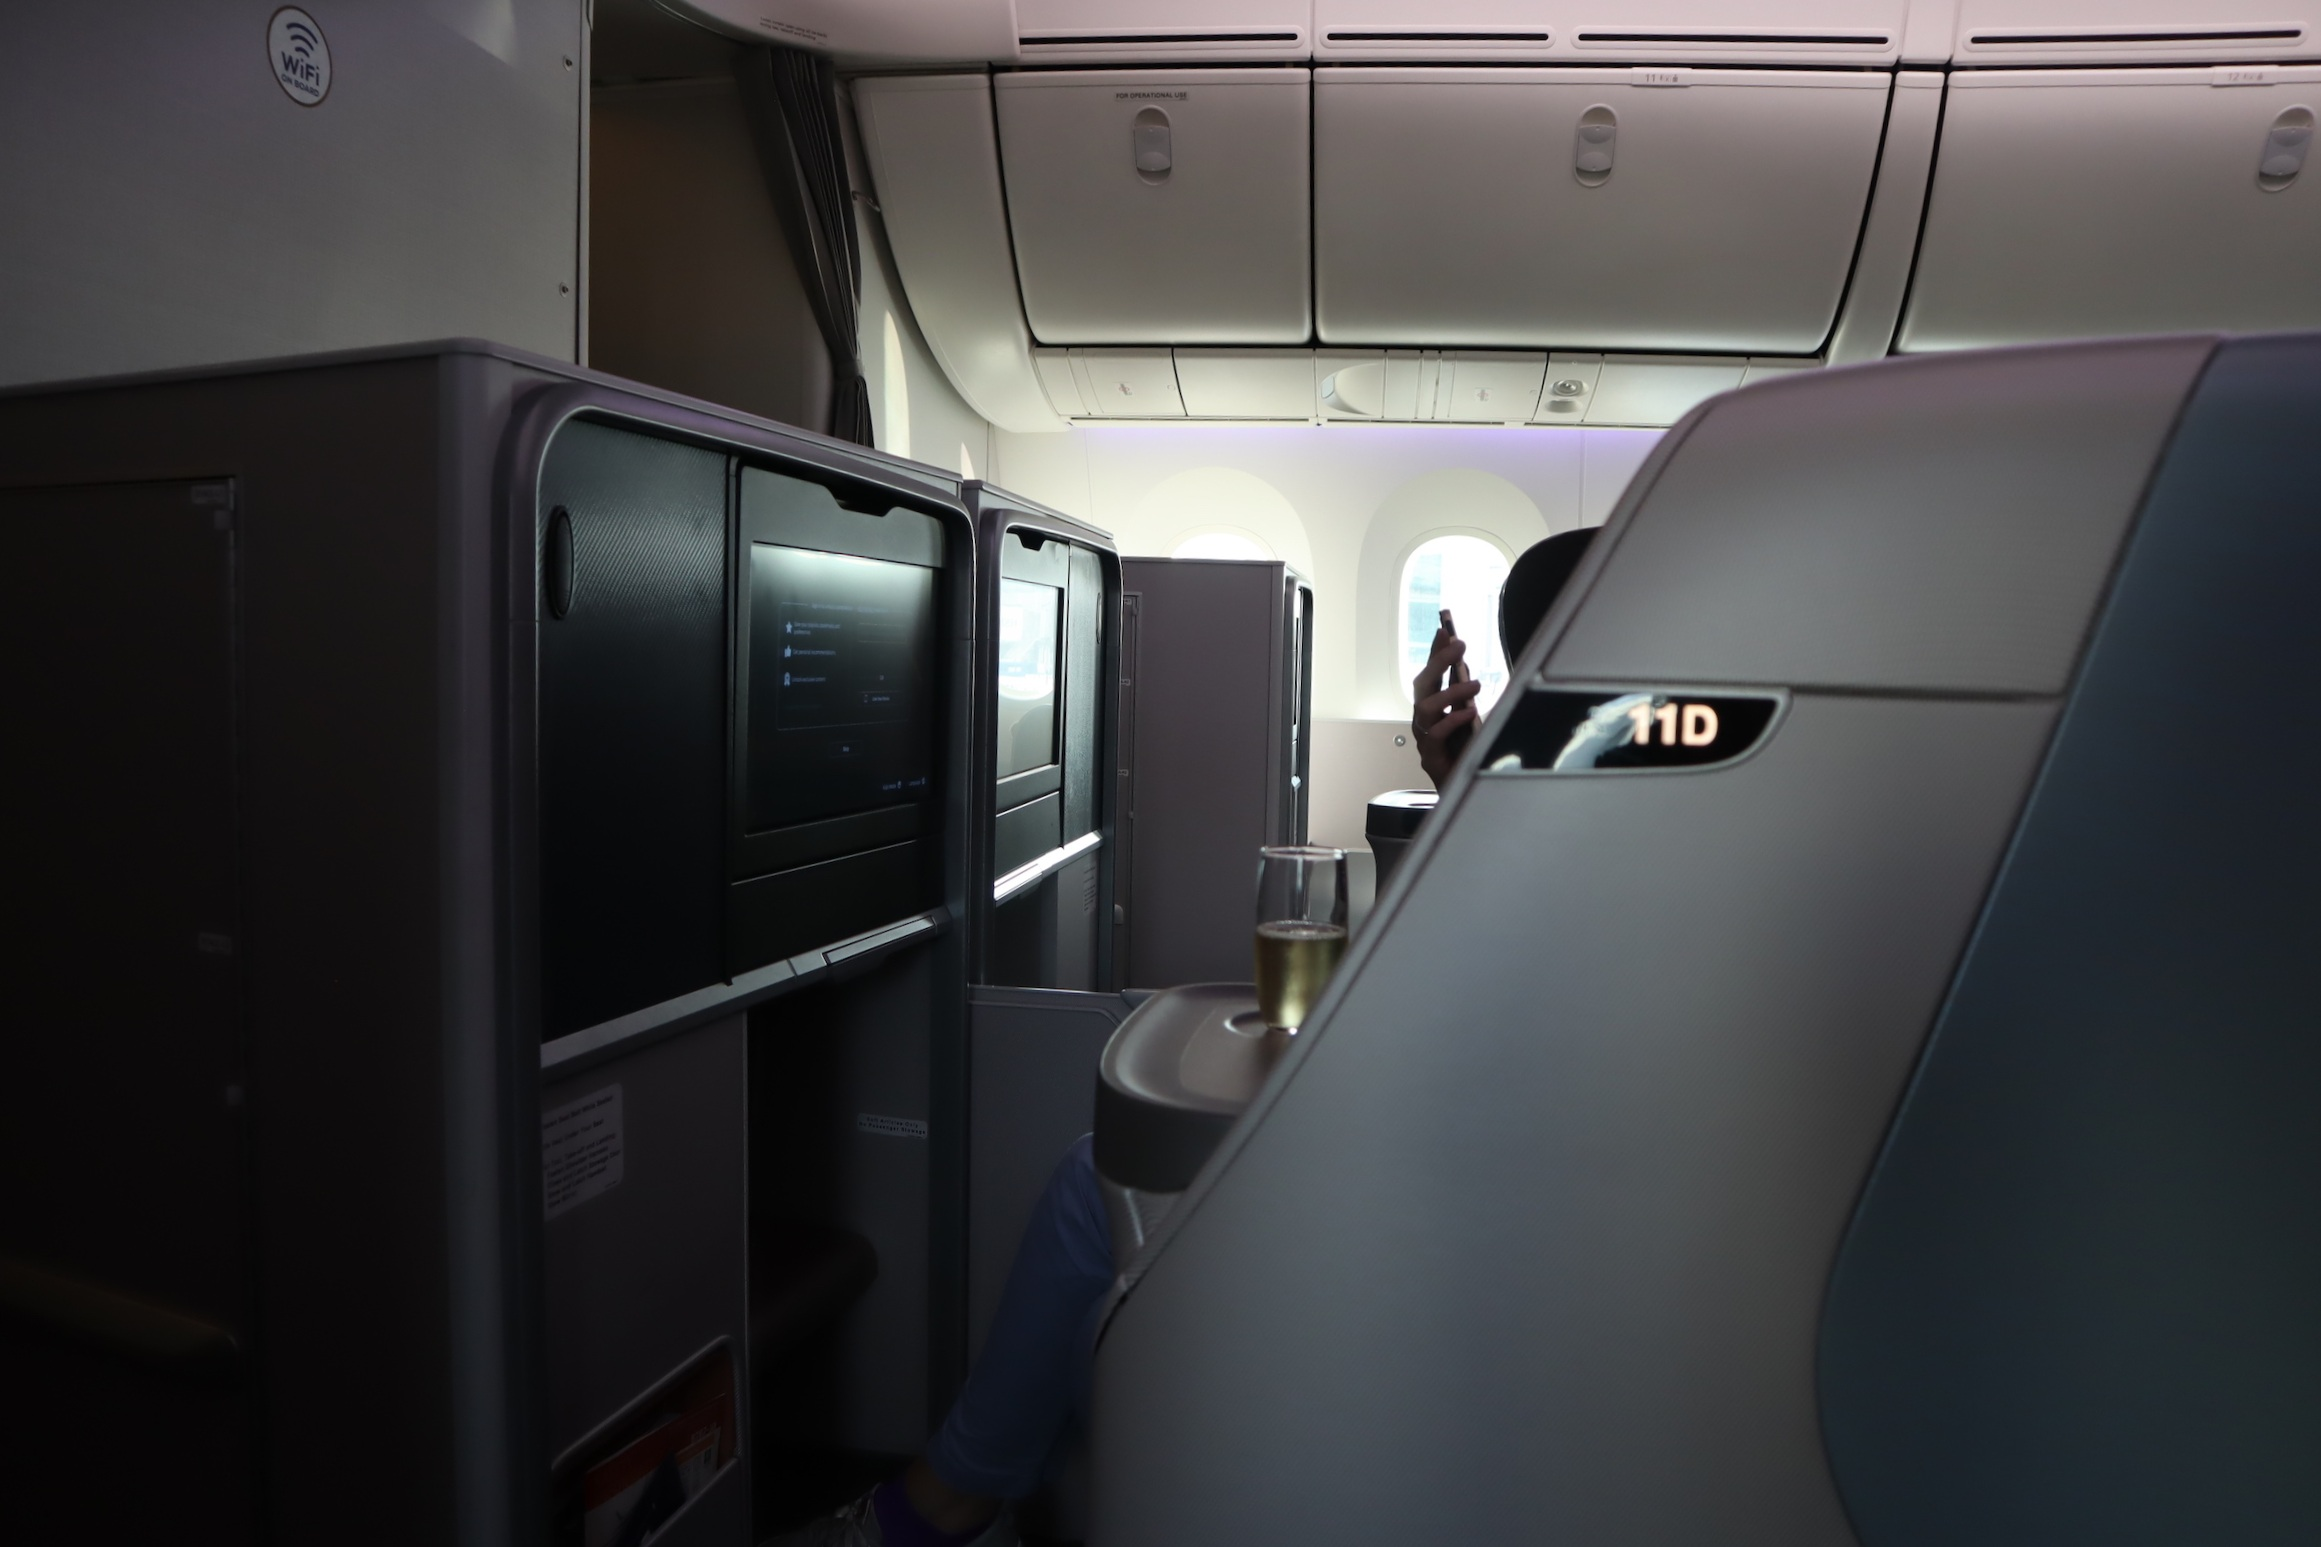 Singapore Airlines 787-10 business class – Privacy